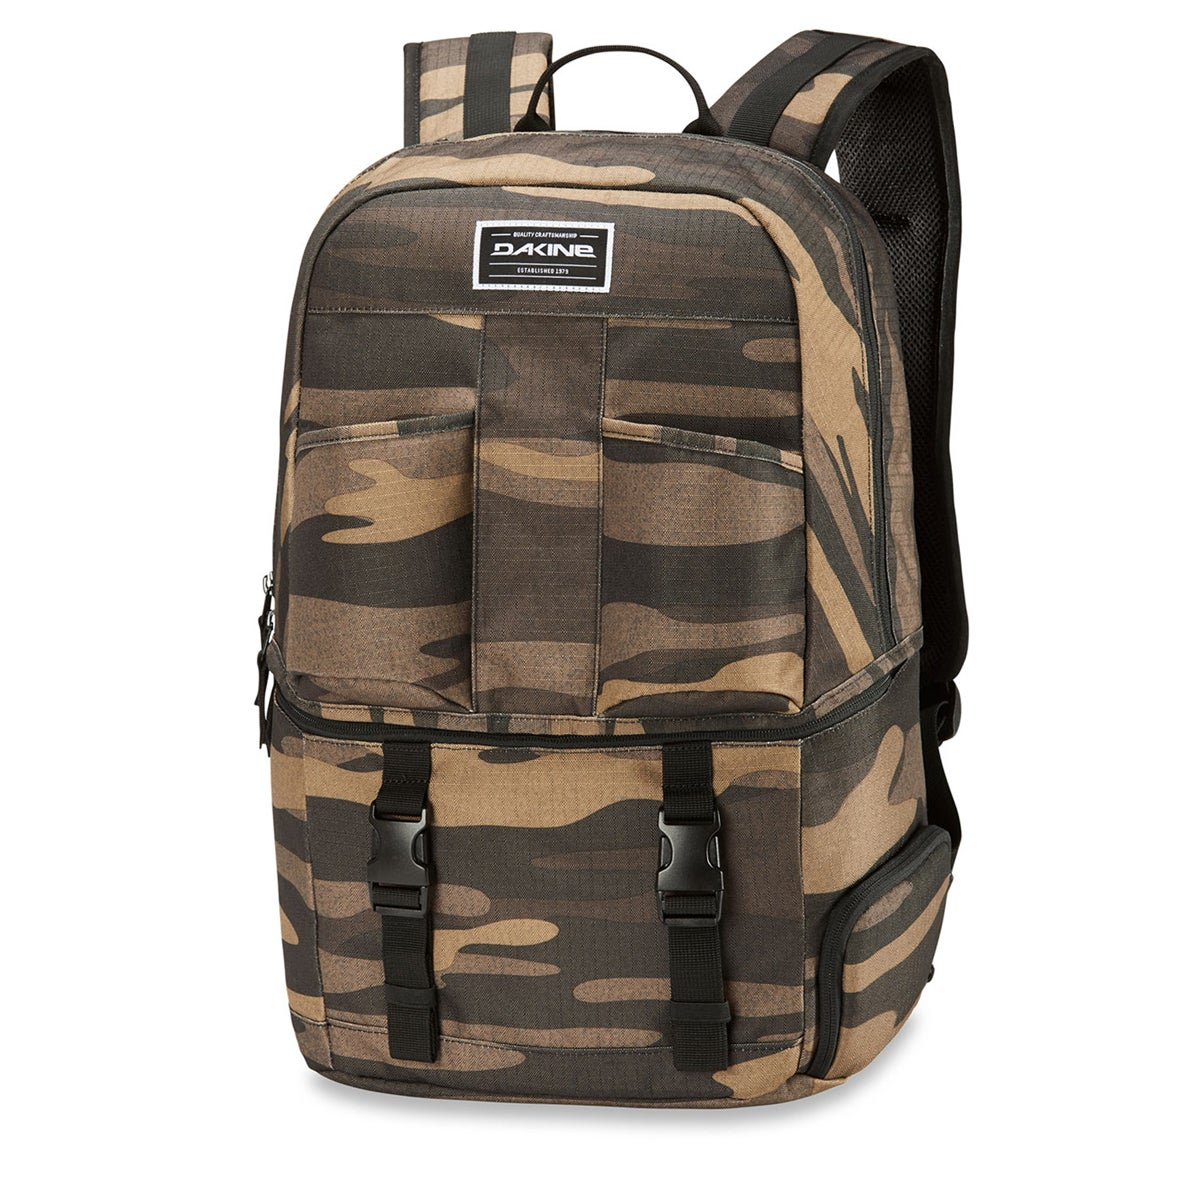 Dakine Party 28L Backpack